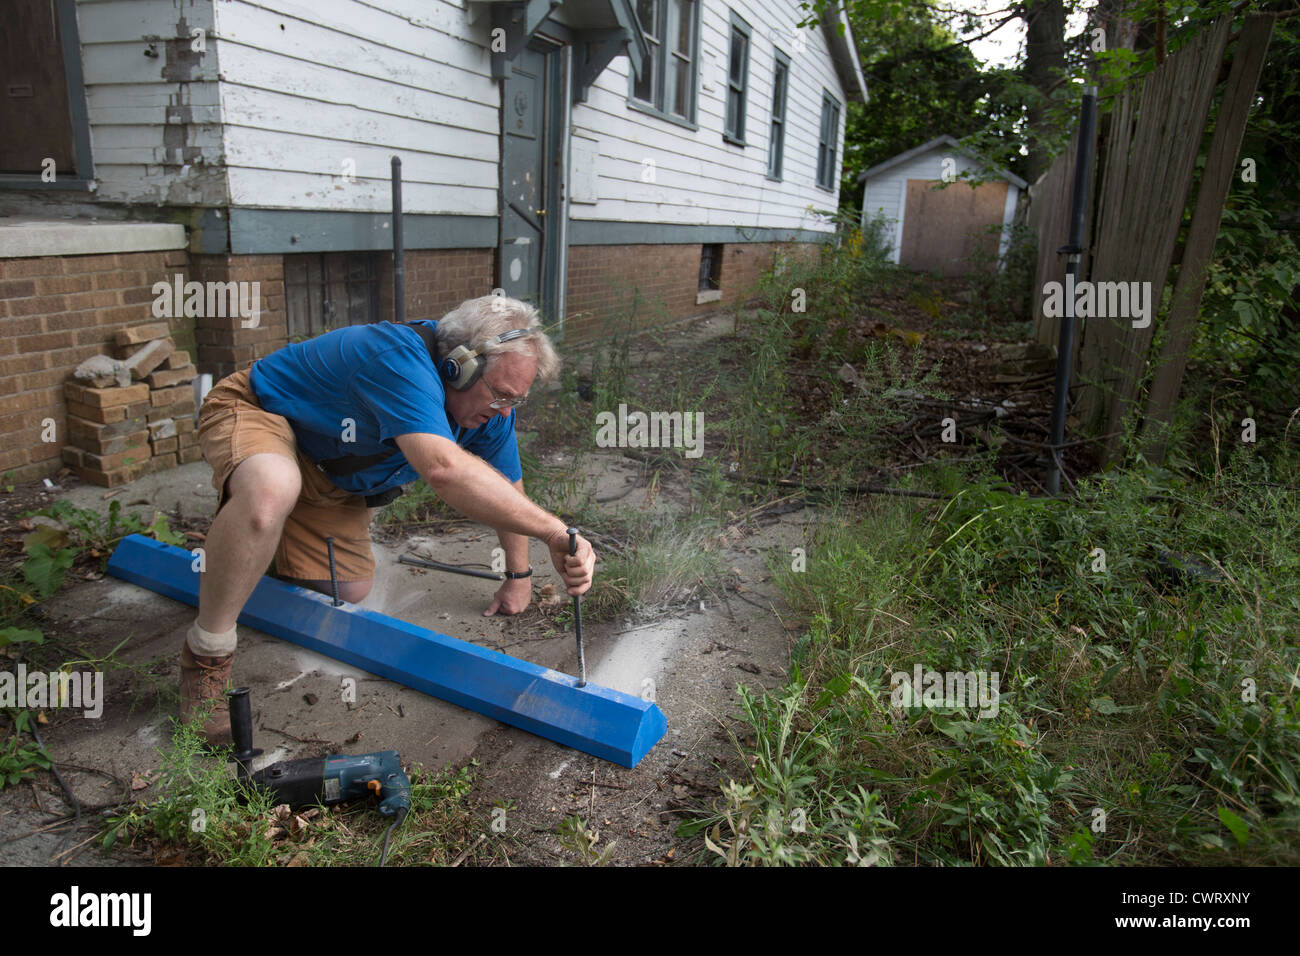 Detroit Block Club Tries to Prevent Illegal Dumping - Stock Image